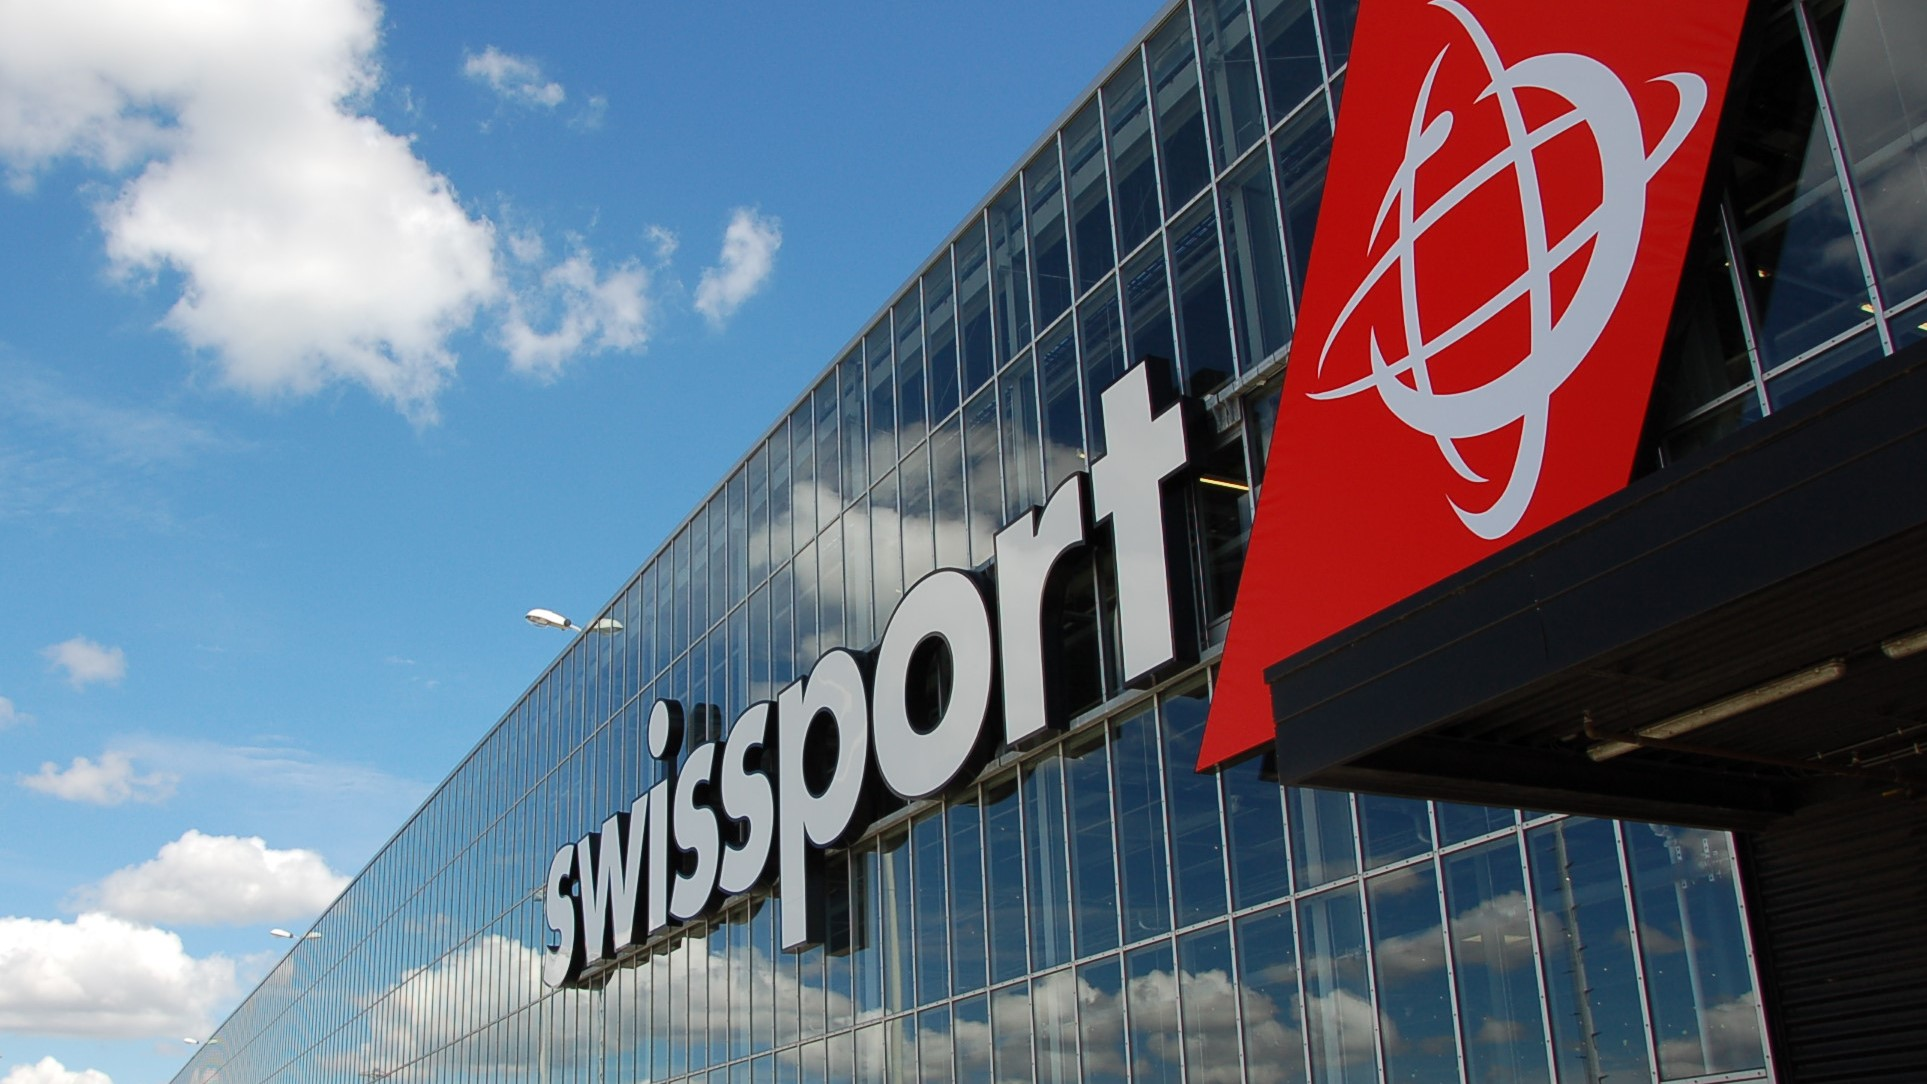 Swissport to Acquire Heathrow Cargo Handling from Air France